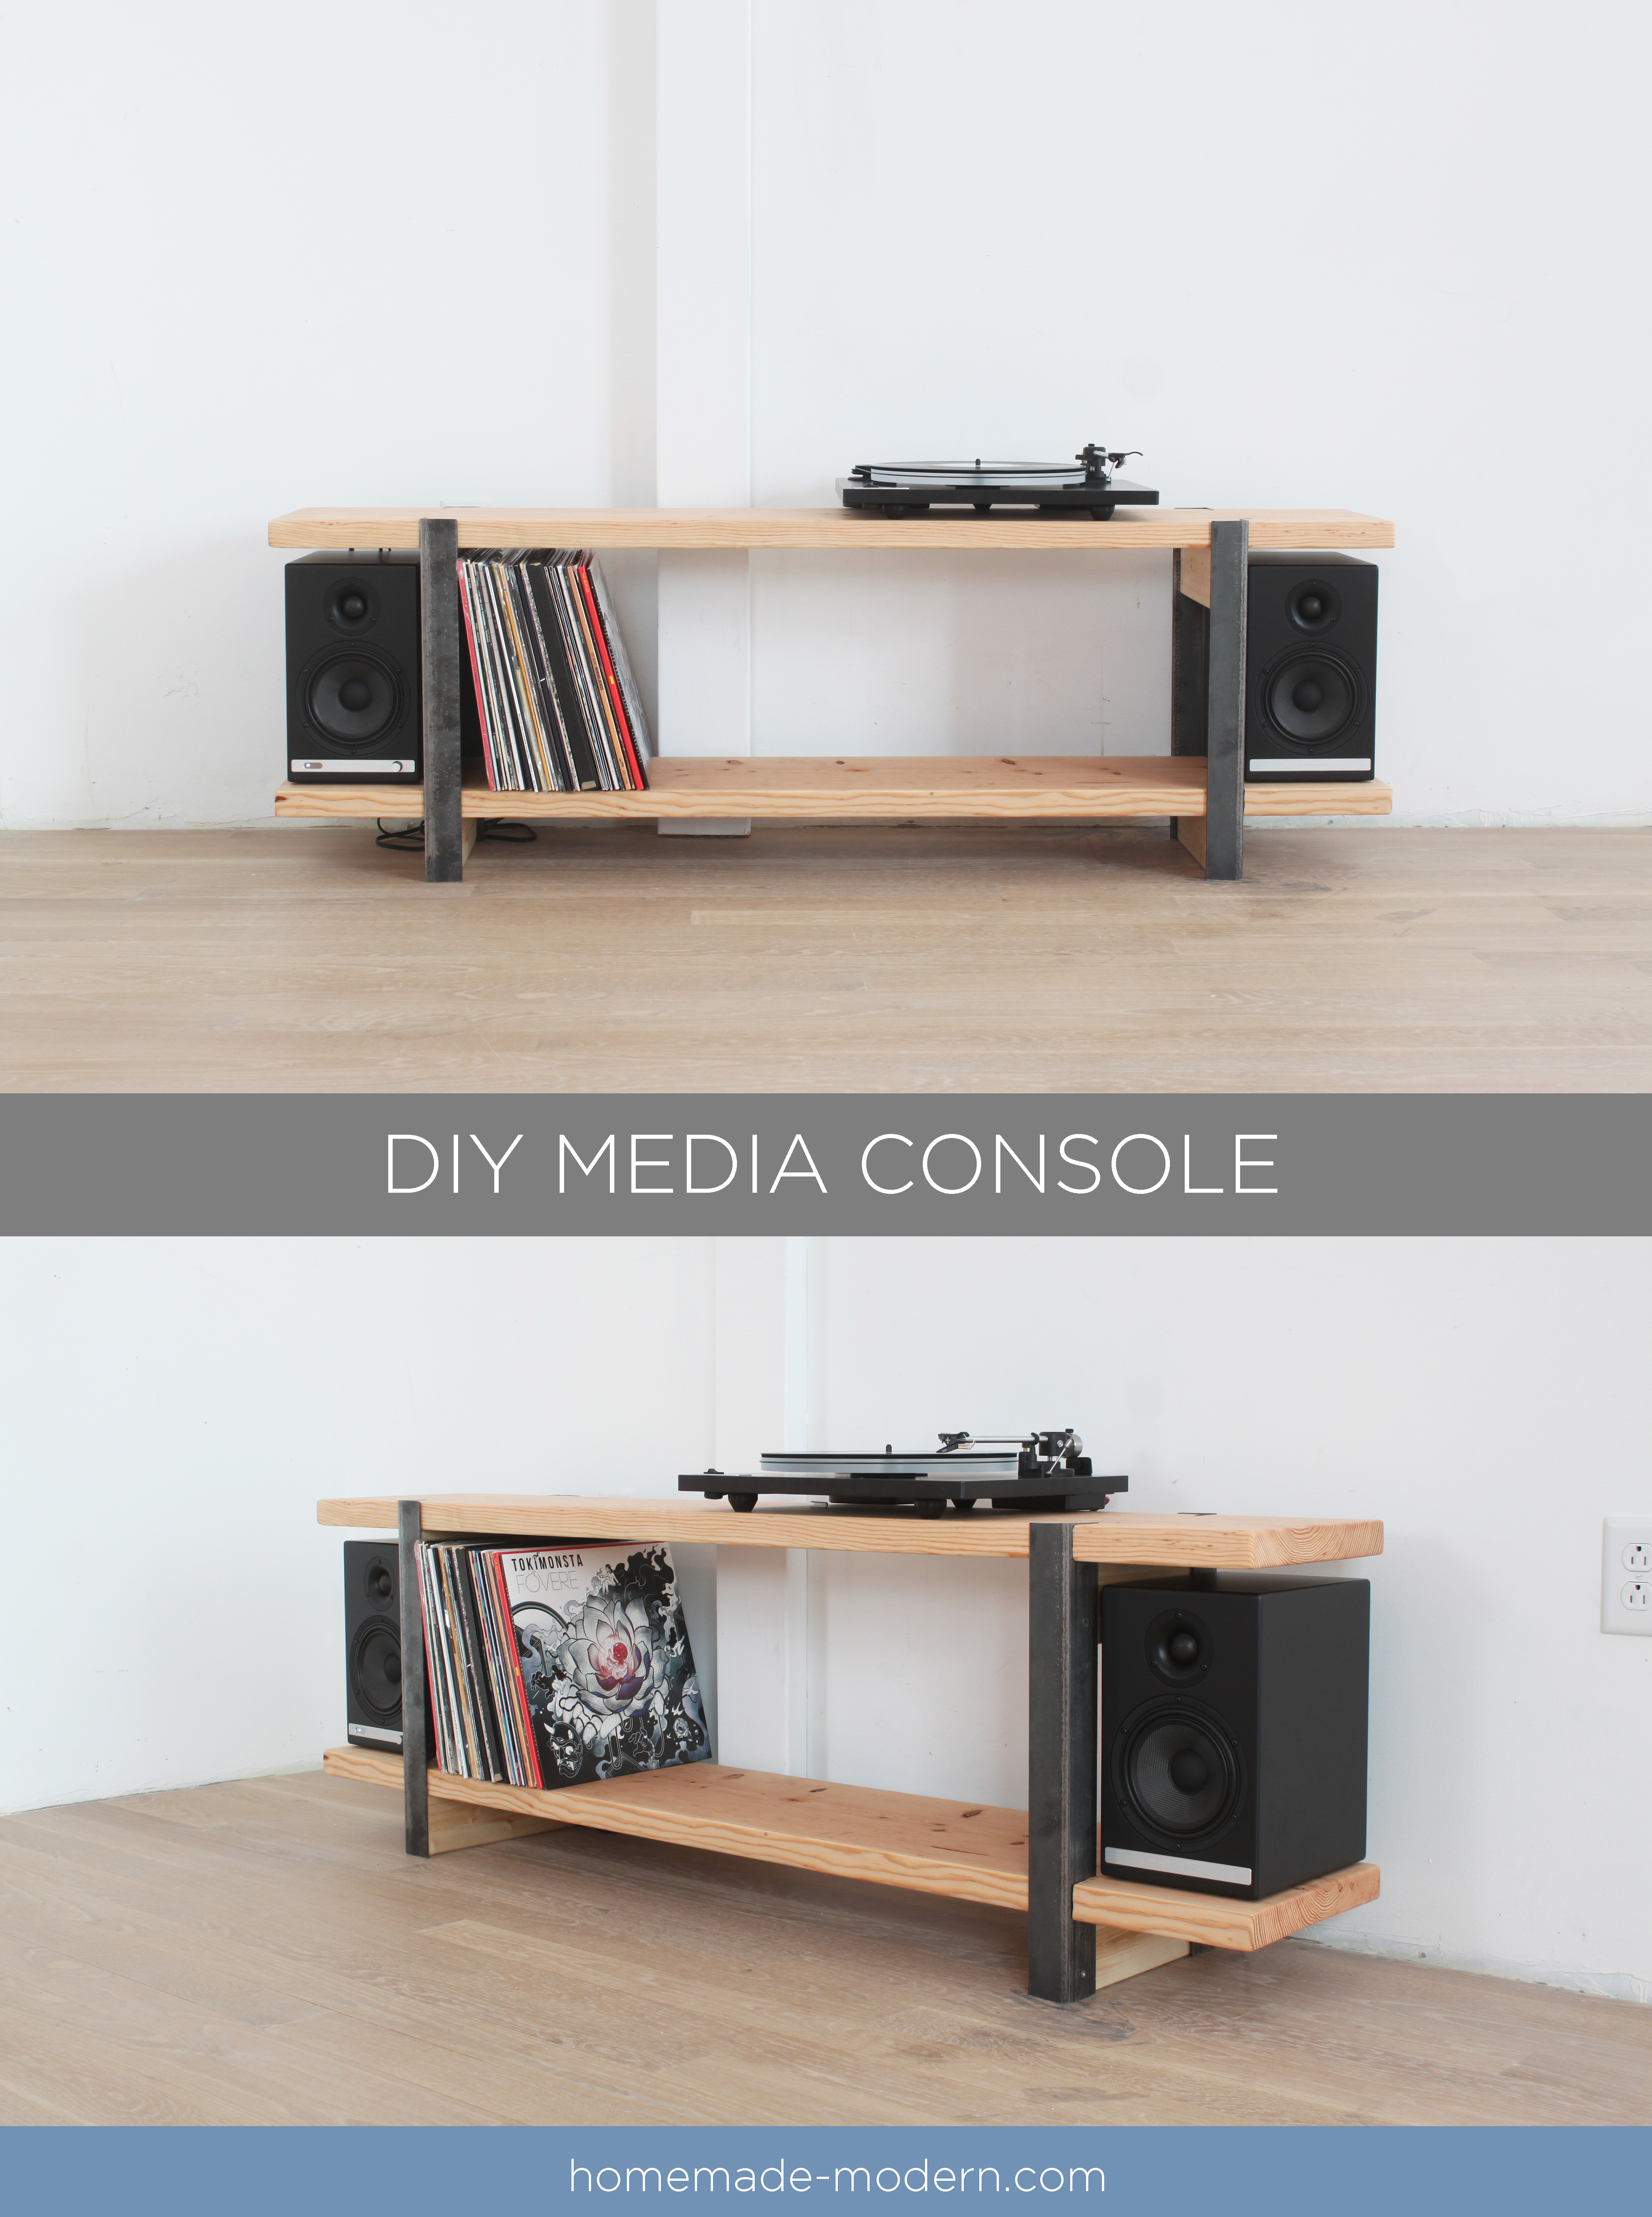 this diy media console is made out of a x and angle irons and the shelves. homemade modern ep diy media console